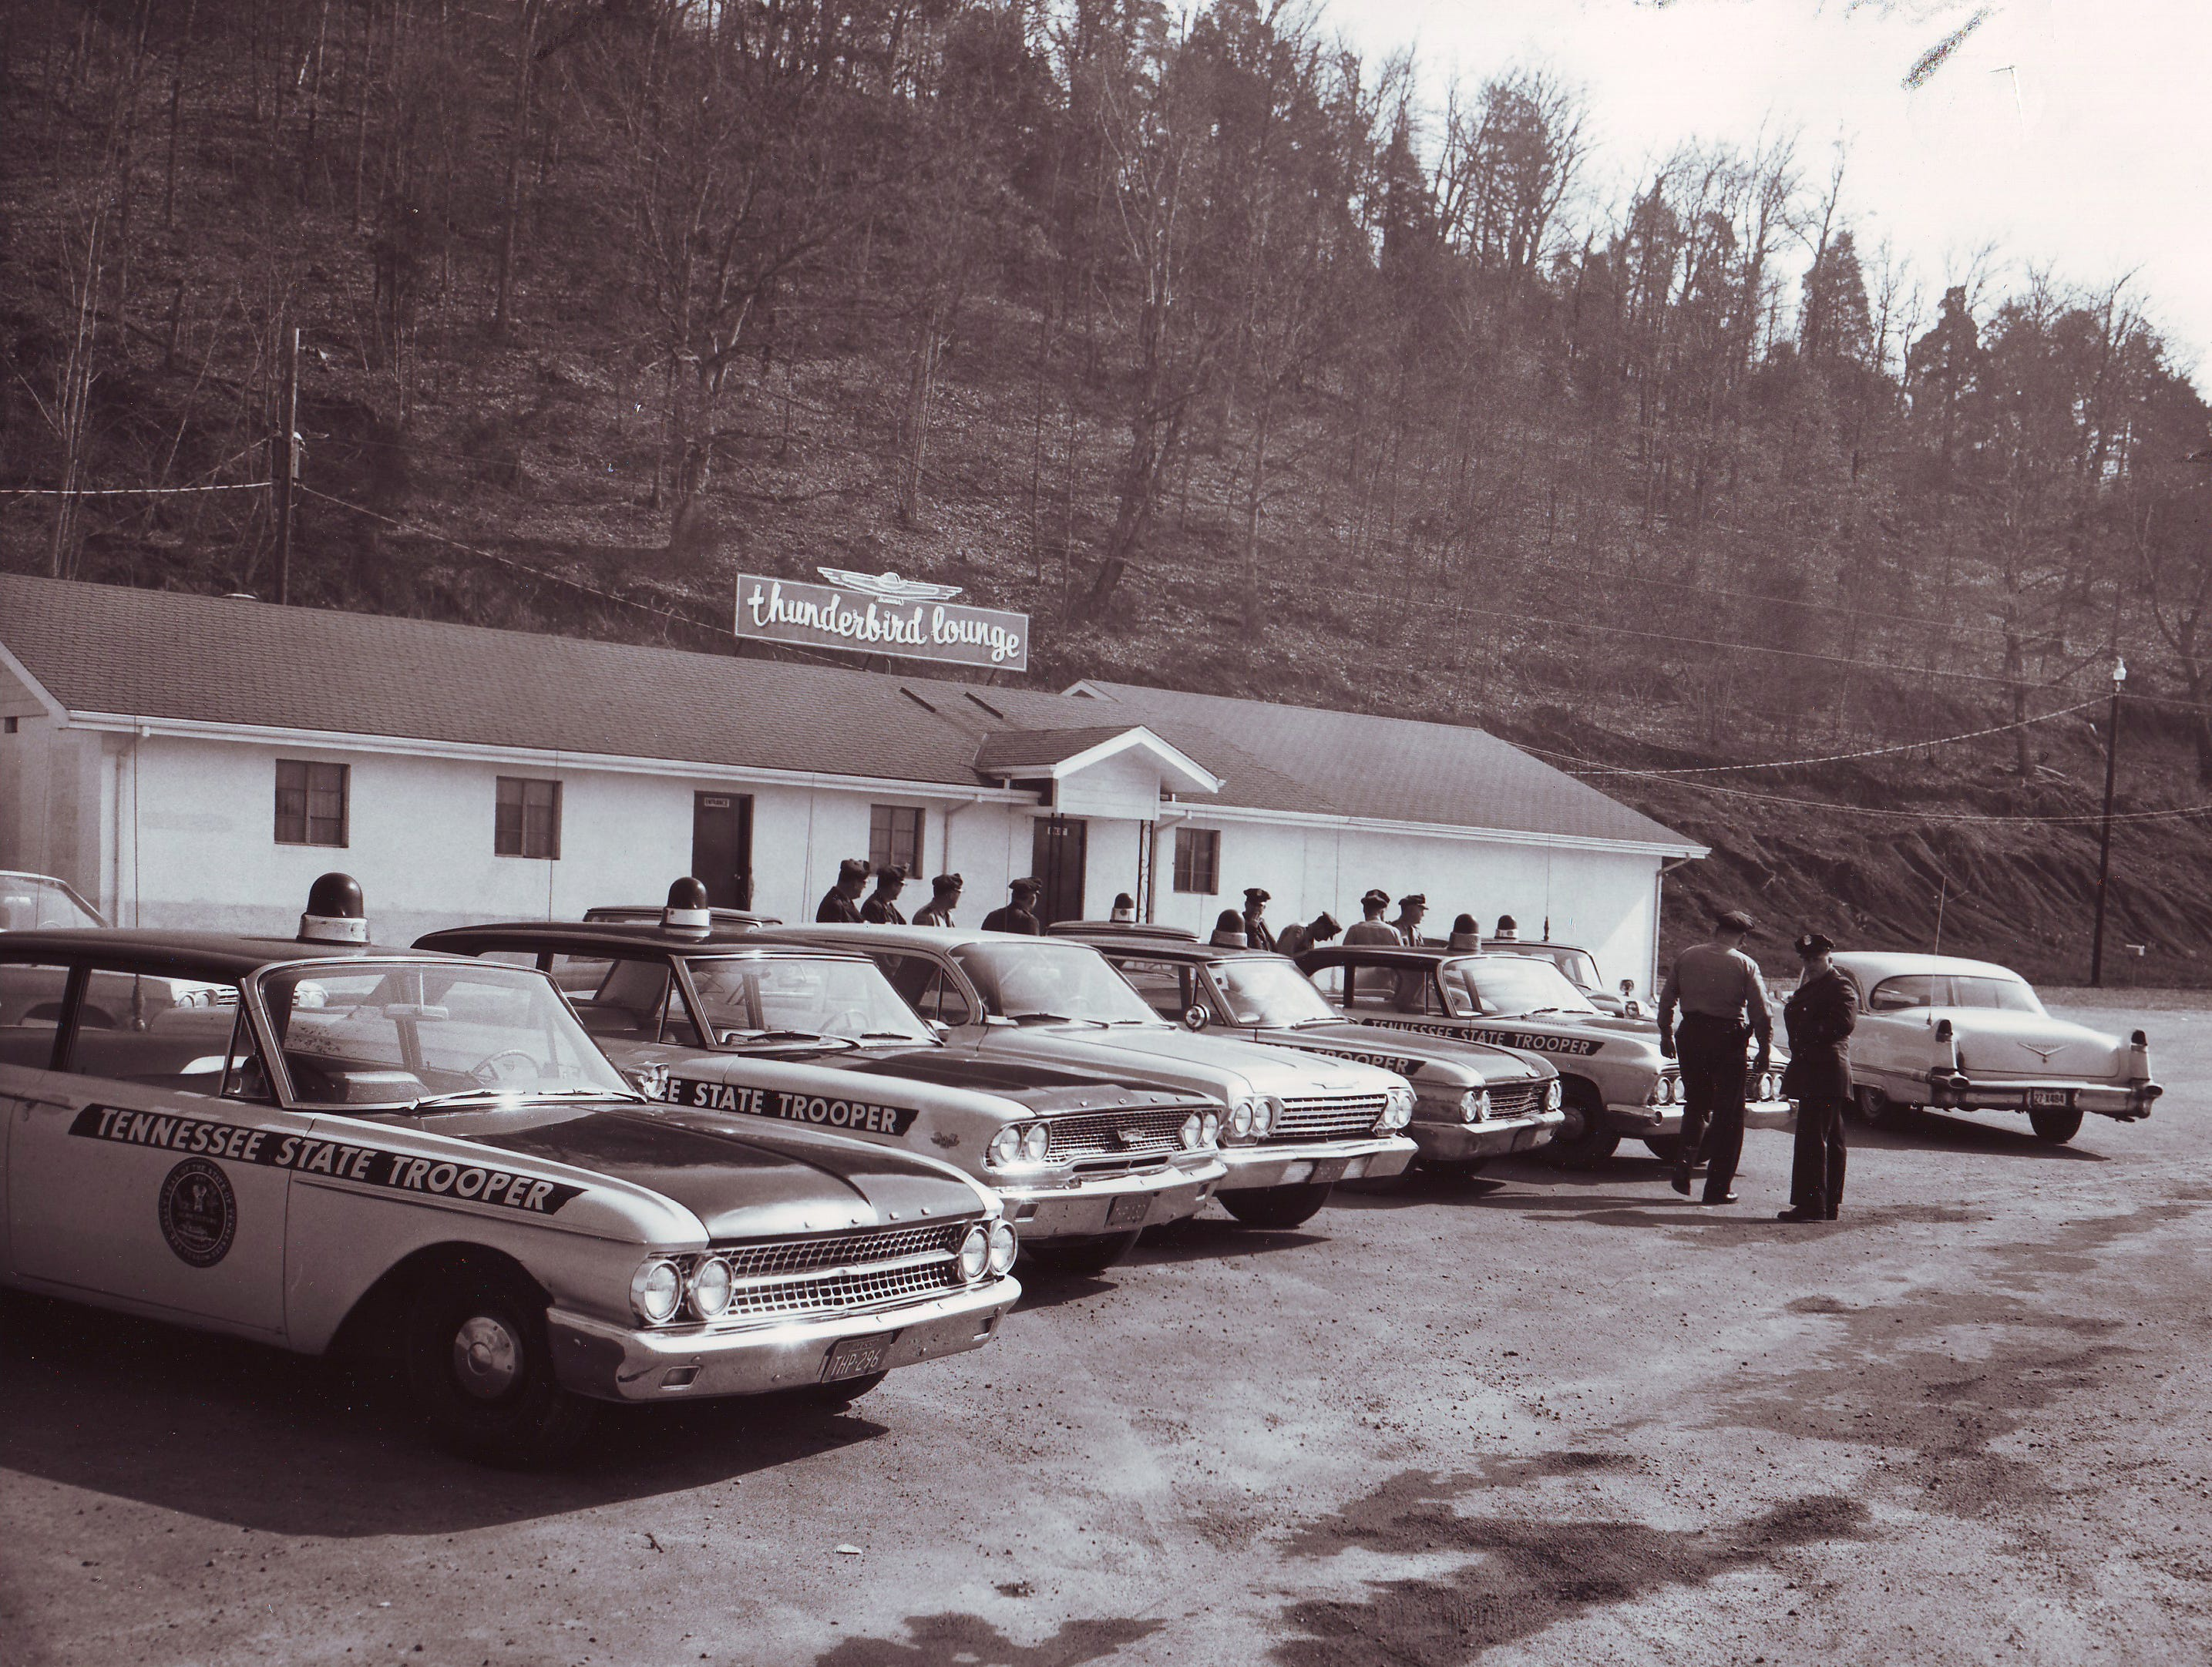 Tennessee state troopers congregate outside of a Cocke County nightspot, The Thunderbird, in early 1963. State troopers regularly raided taverns in the county during the 1960s. In one New Year's Eve operation in 1962, a team of state troopers fanned out across the county and filed charges against 32 beer joints for operating without state beer certificates.